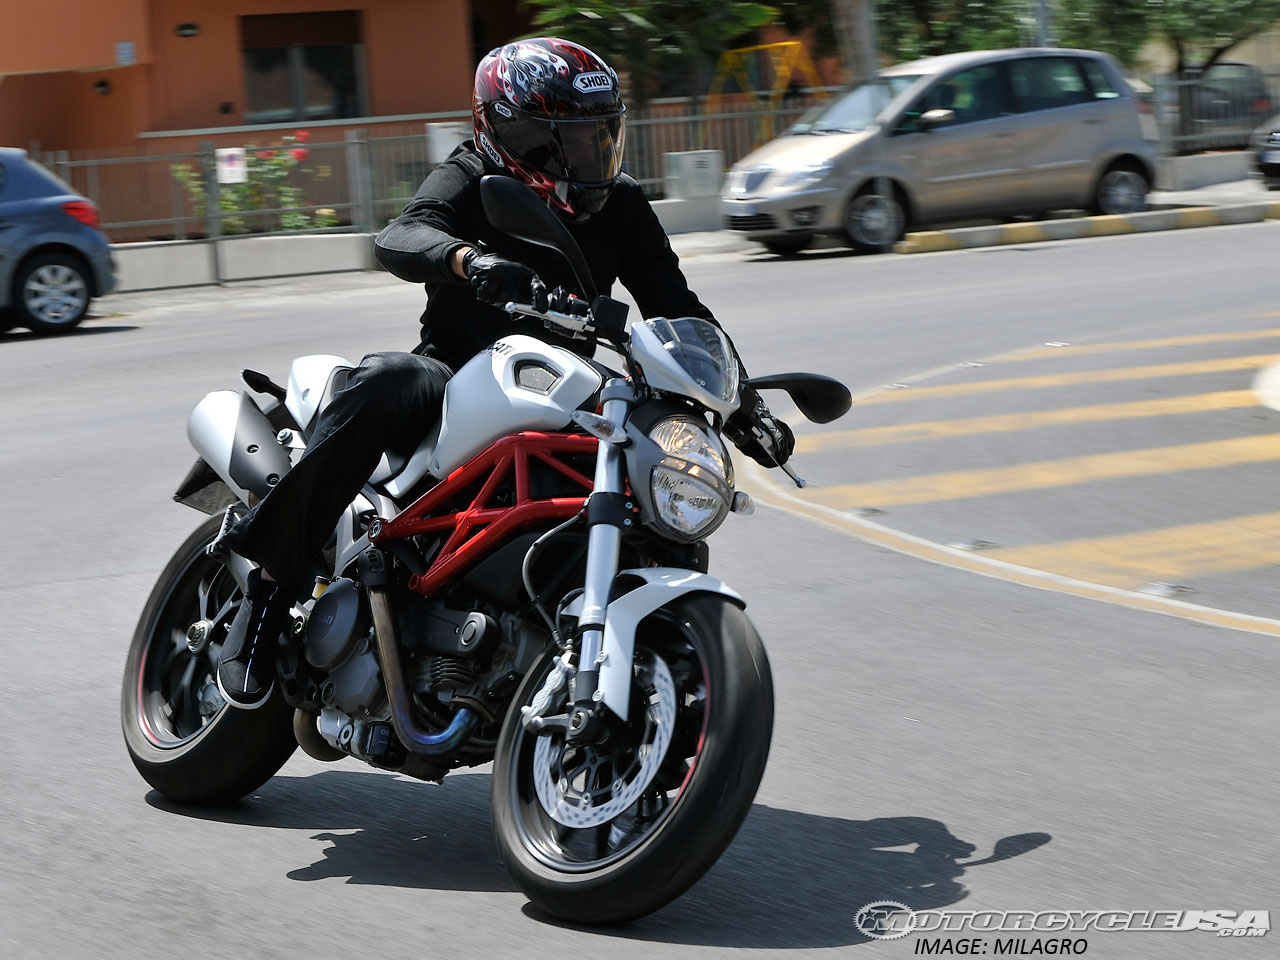 Ducati Hypermotard 796 2011 images #79585